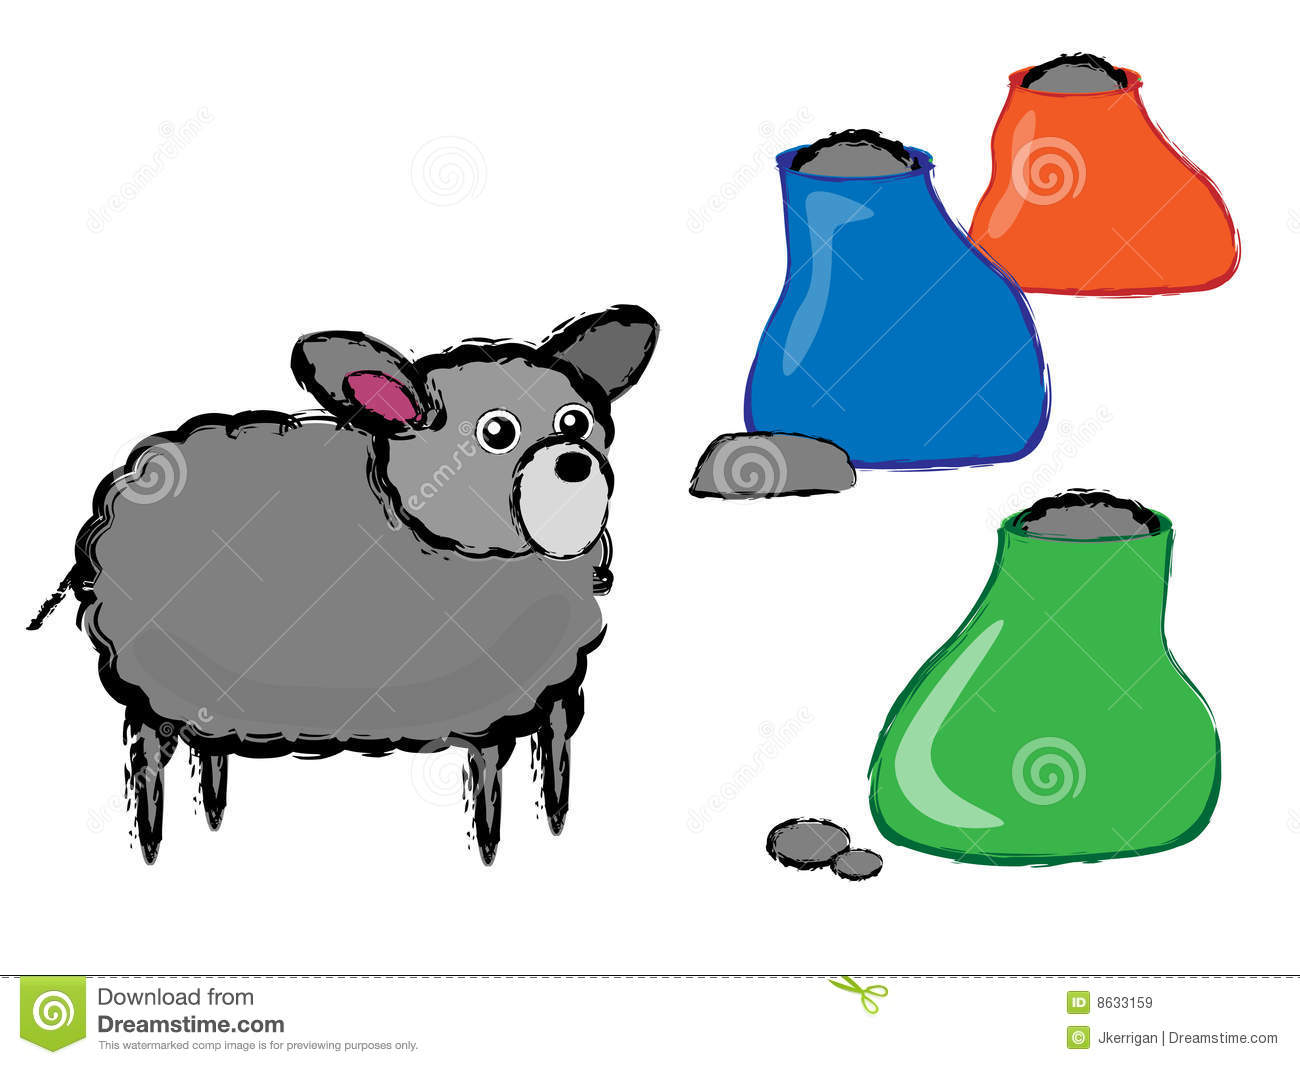 Stock Illustration Cartoon Farm Animals Pasture Sheep Horse Cow Pig Field Rural Landscape Children Illustration Image69583684 further Stock Illustration Collection Animal Crossing Signs Used Usa Image61167547 besides Lamb Toy in addition Stock Illustration Scared Cartoon Sheep Illustration Looking Image47054628 besides Cute Cartoon Cows. on animal cartoon sheep